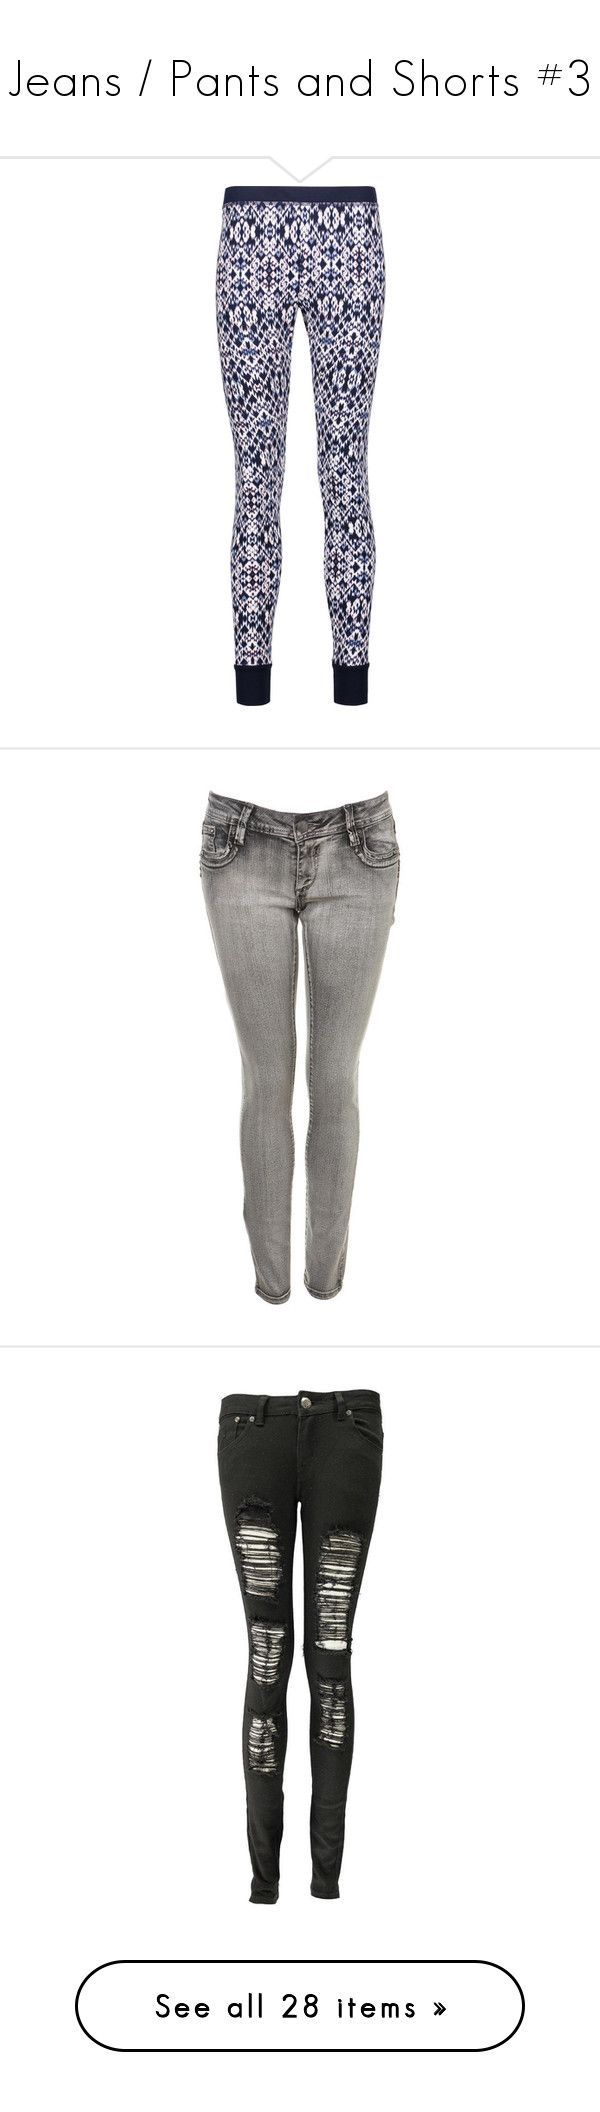 """Jeans / Pants and Shorts #3"" by bubble-loves-you ❤ liked on Polyvore featuring multi, color block jersey, jeans, pants, bottoms, calças, skinny jeans, women's clothing, acid washed jeans and gray skinny jeans"